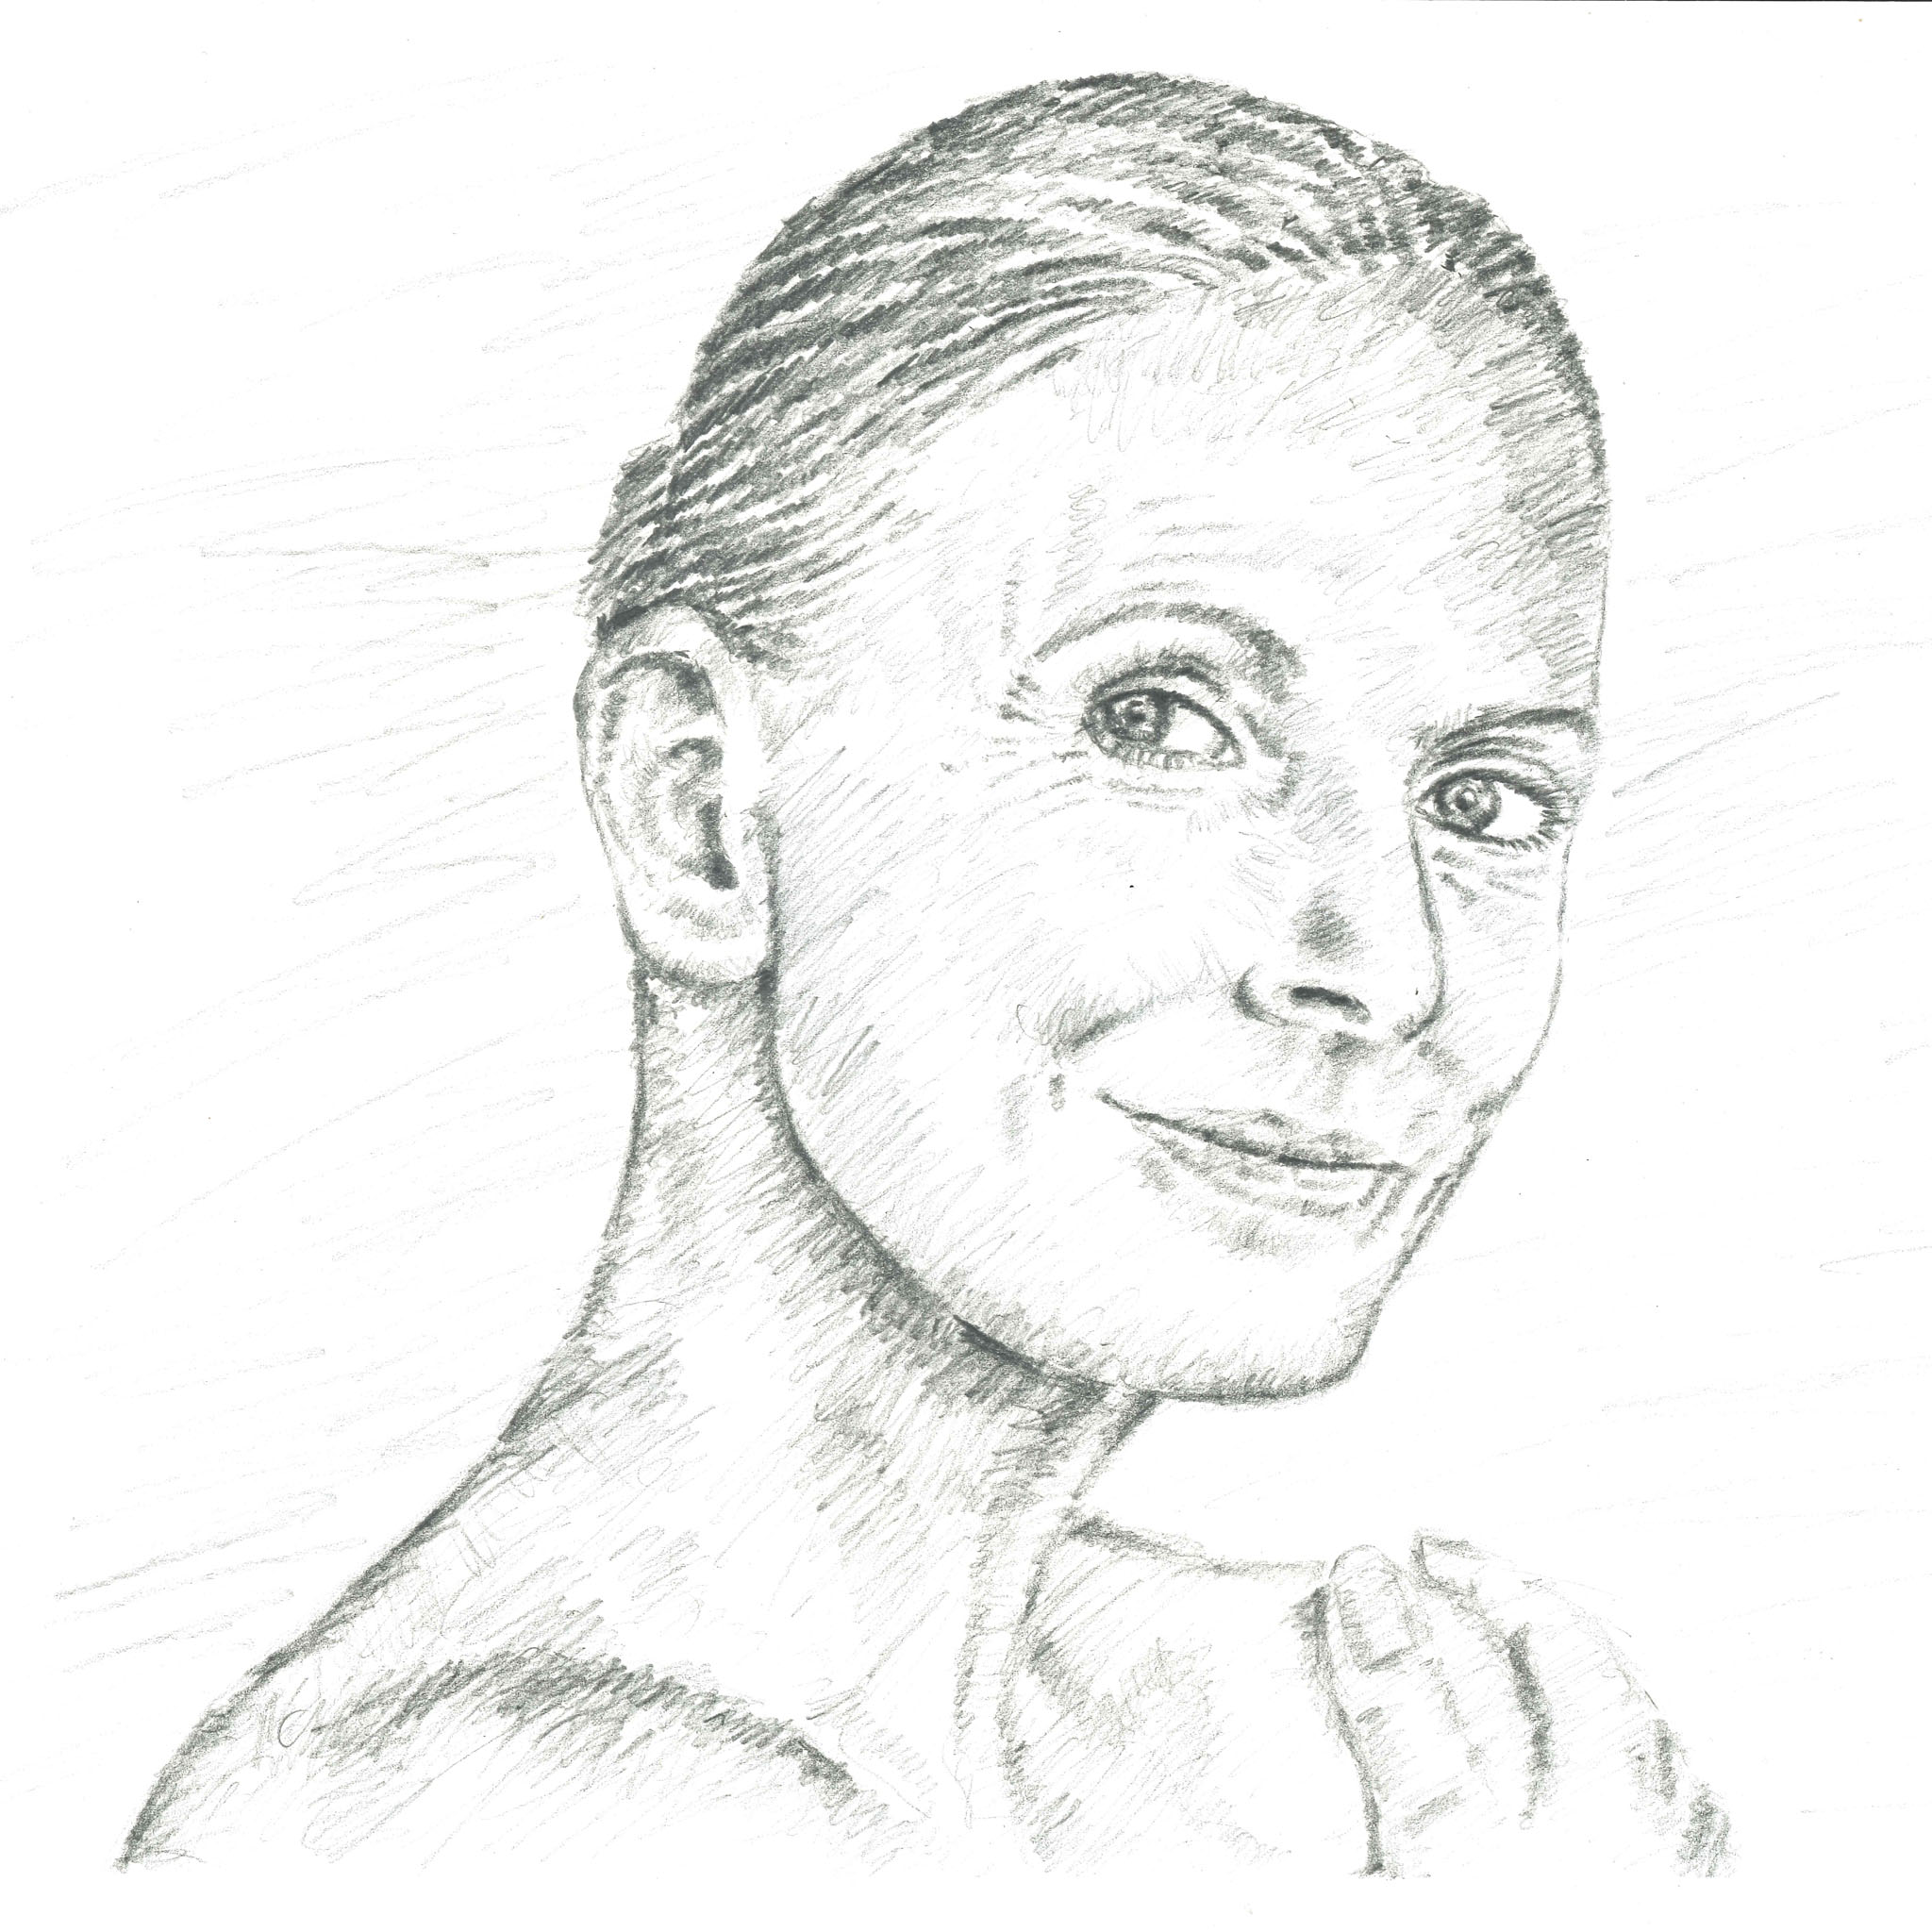 Sketch of woman's face, neck and shoulders